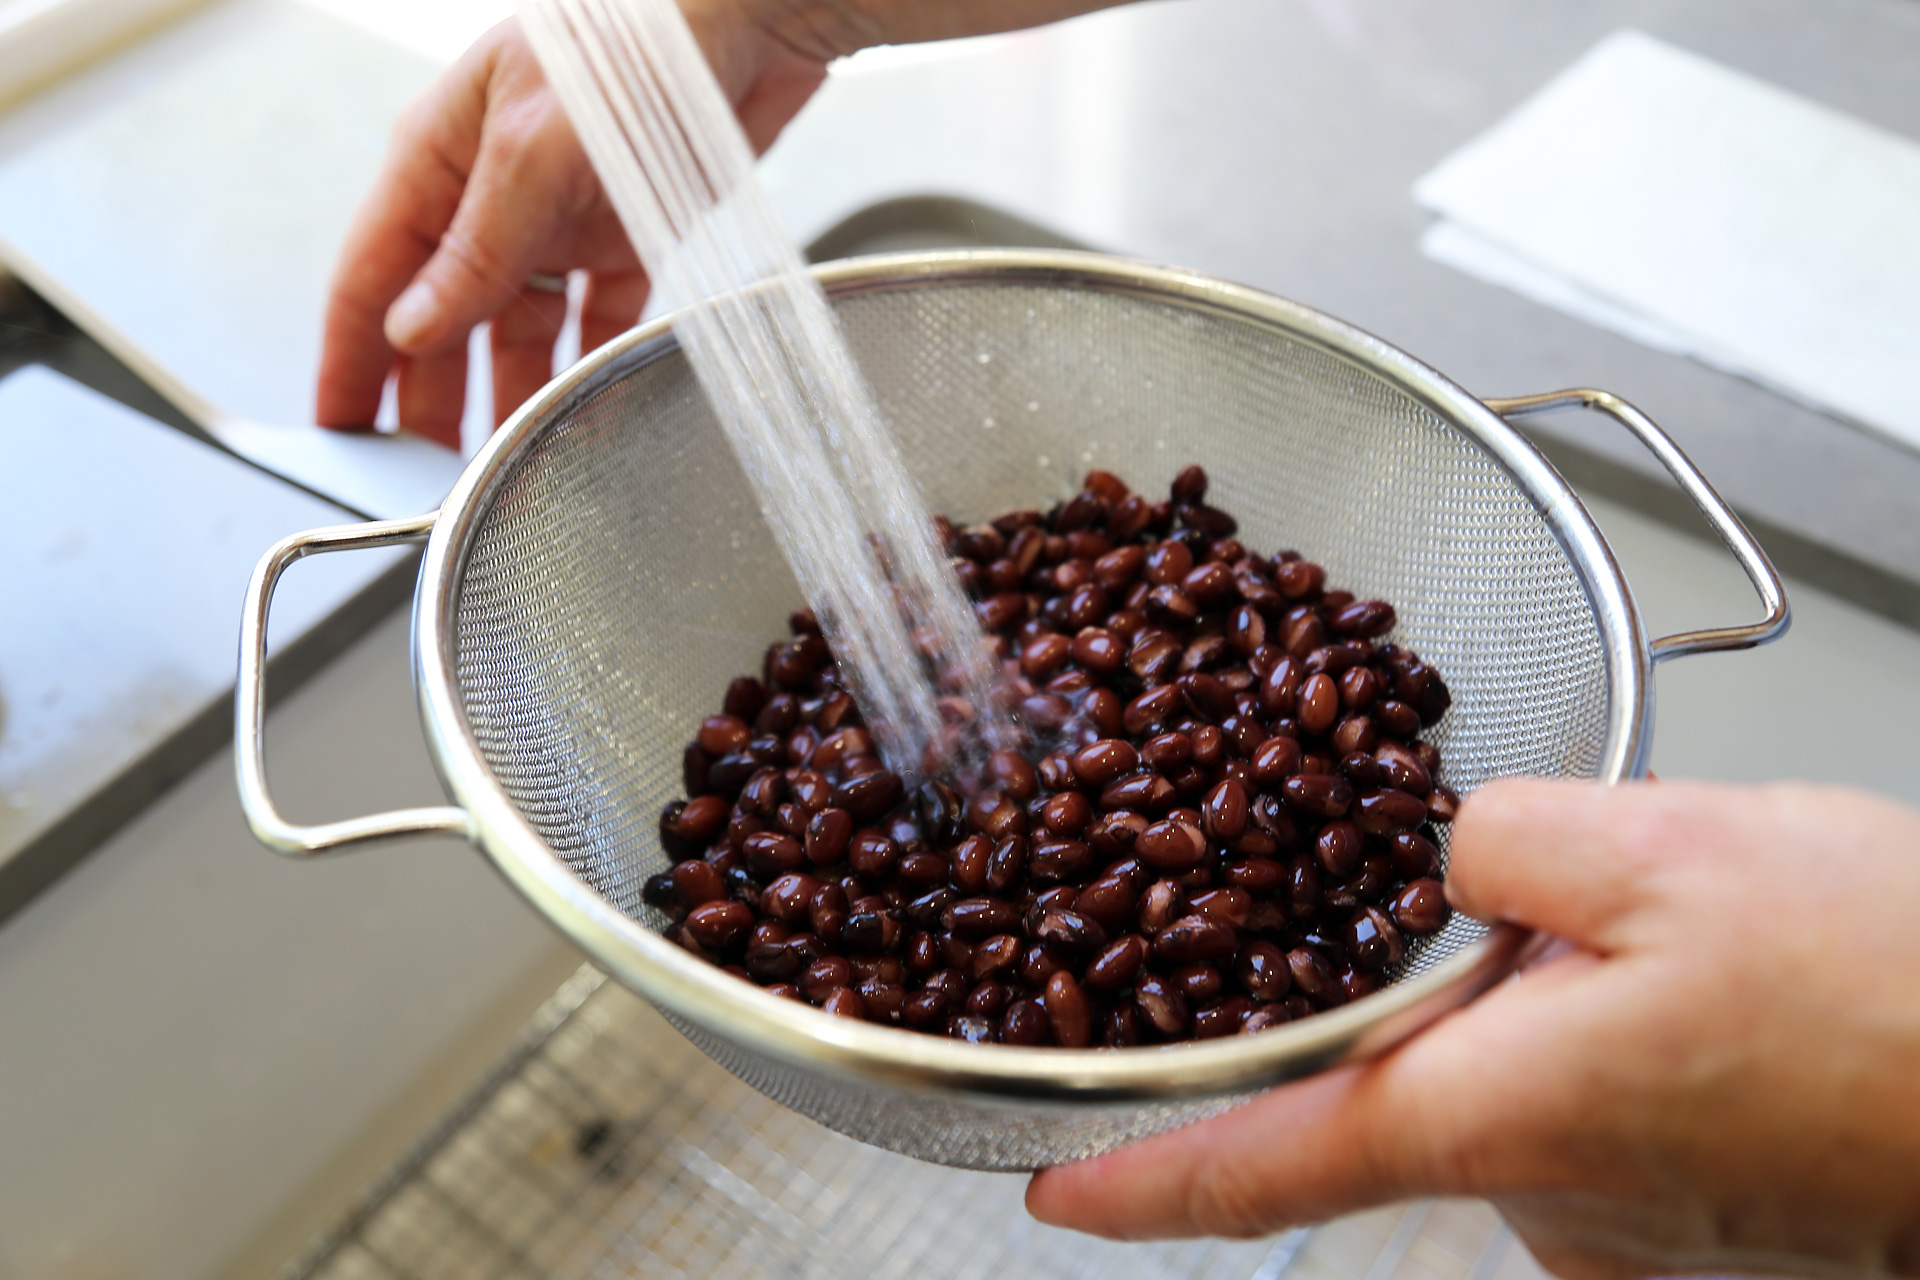 Drain and rinse canned organic black beans.